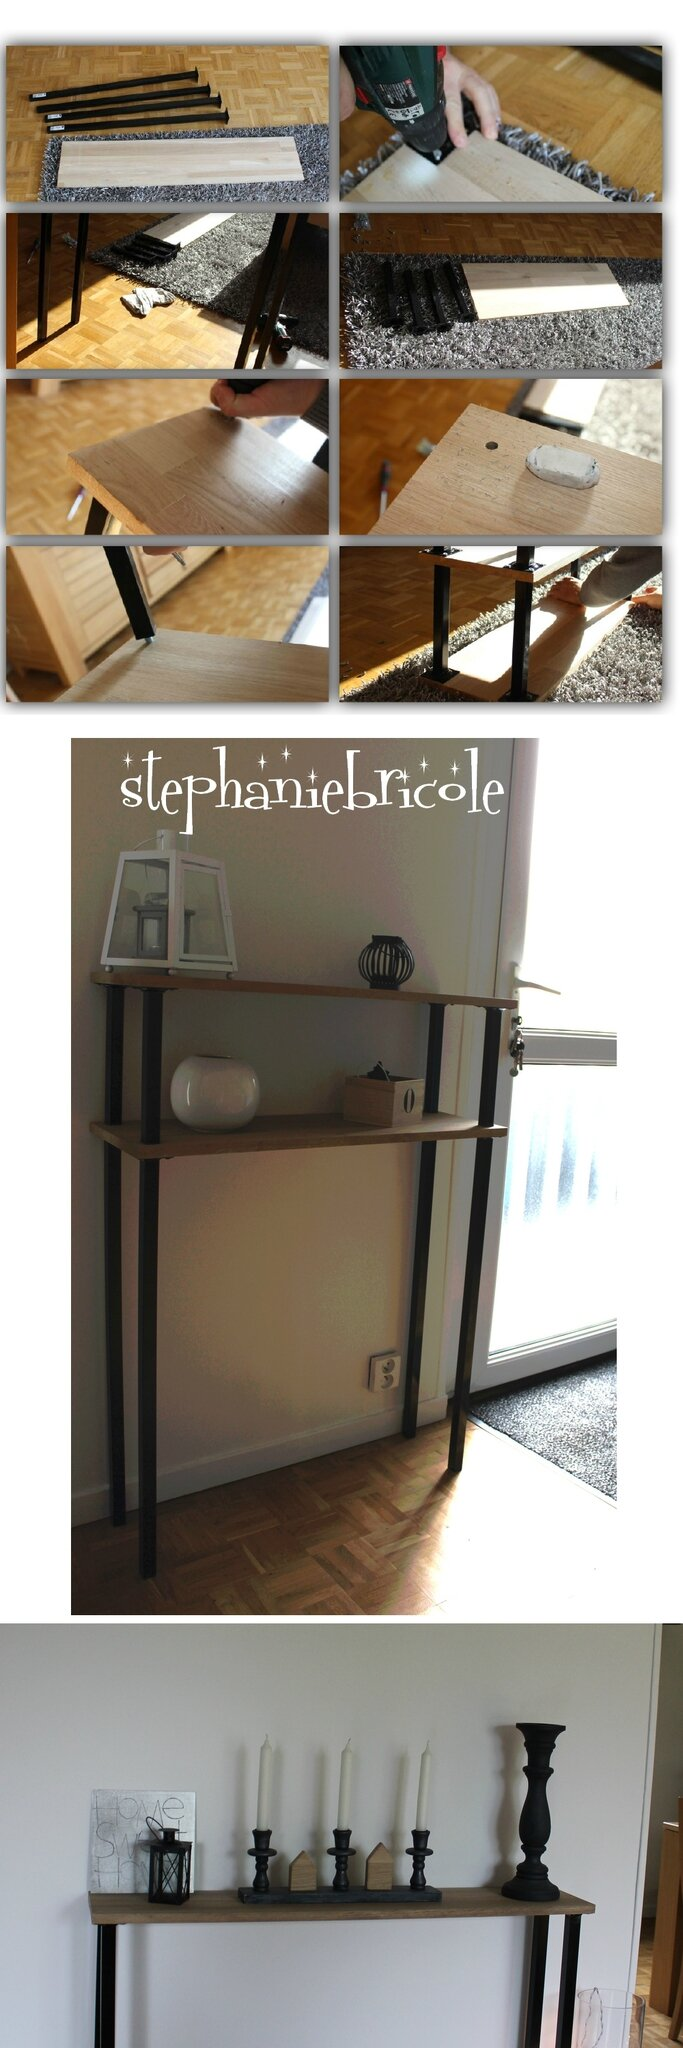 Diy d co faire un meuble console au style industriel soi for Meuble type industriel pas cher